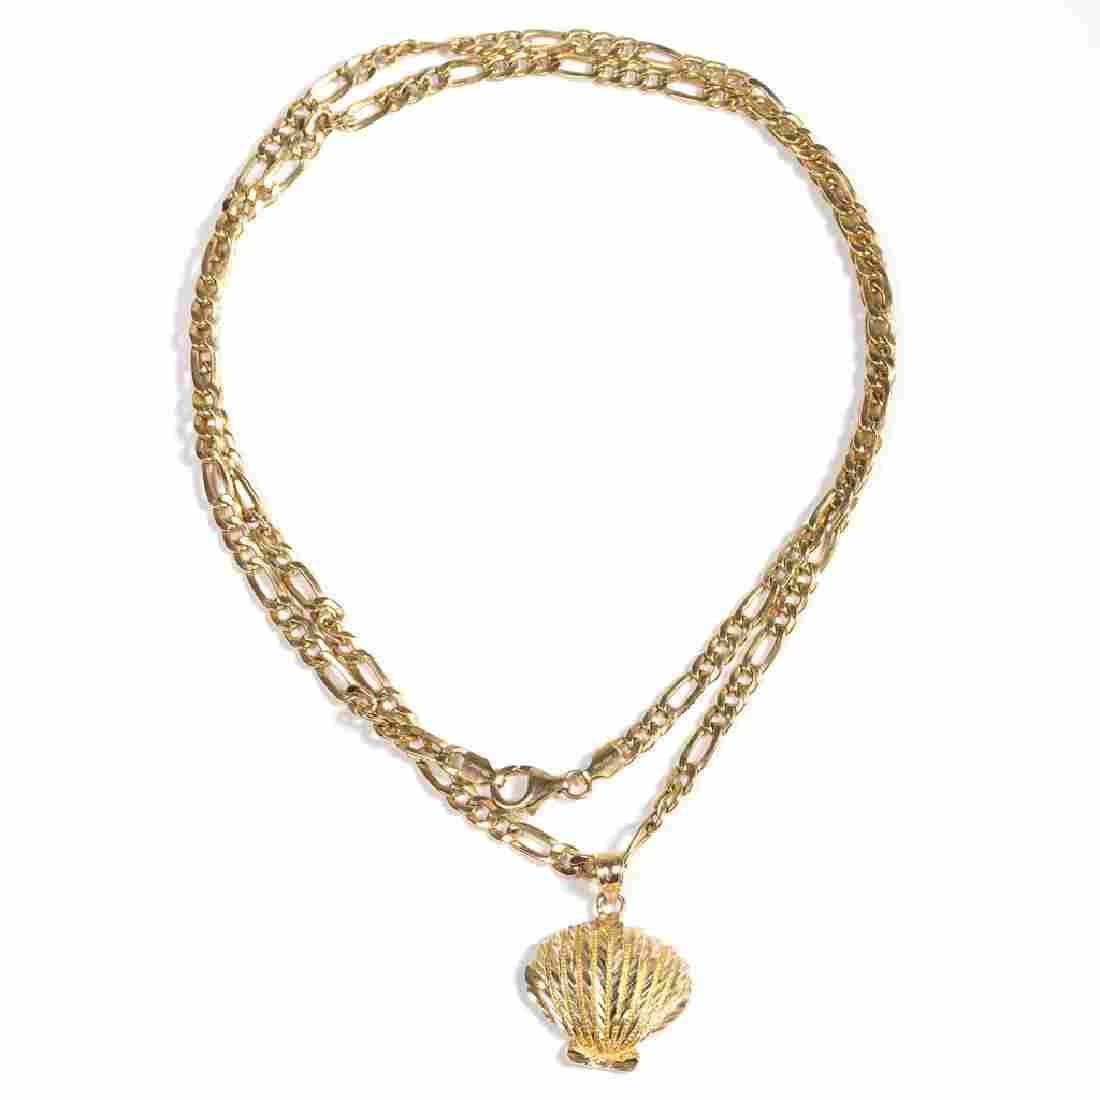 VINTAGE ITALIAN LADY'S 18K GOLD NECKLACE